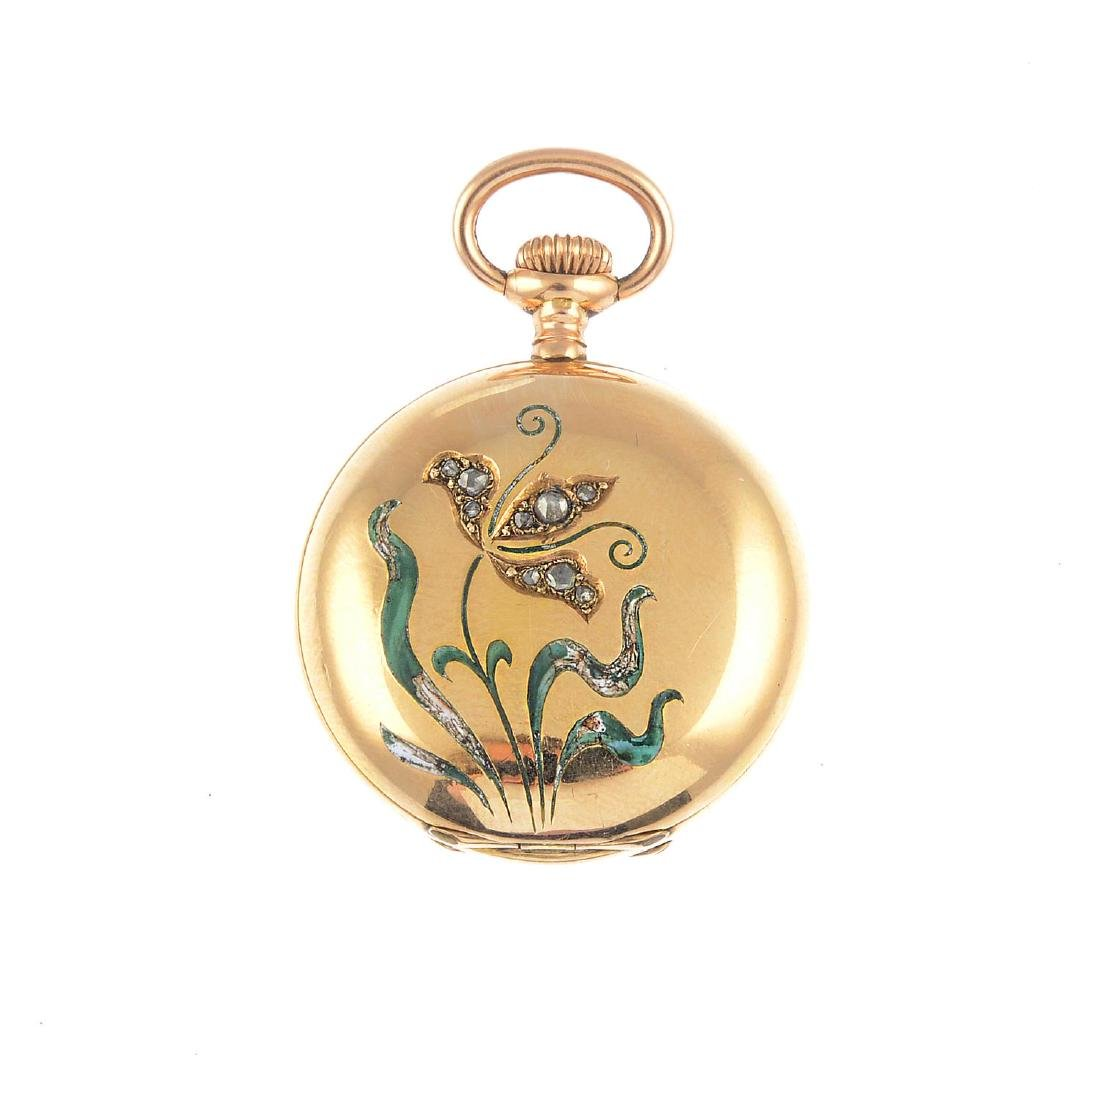 An early 20th century 14ct gold, diamond and enamel fob